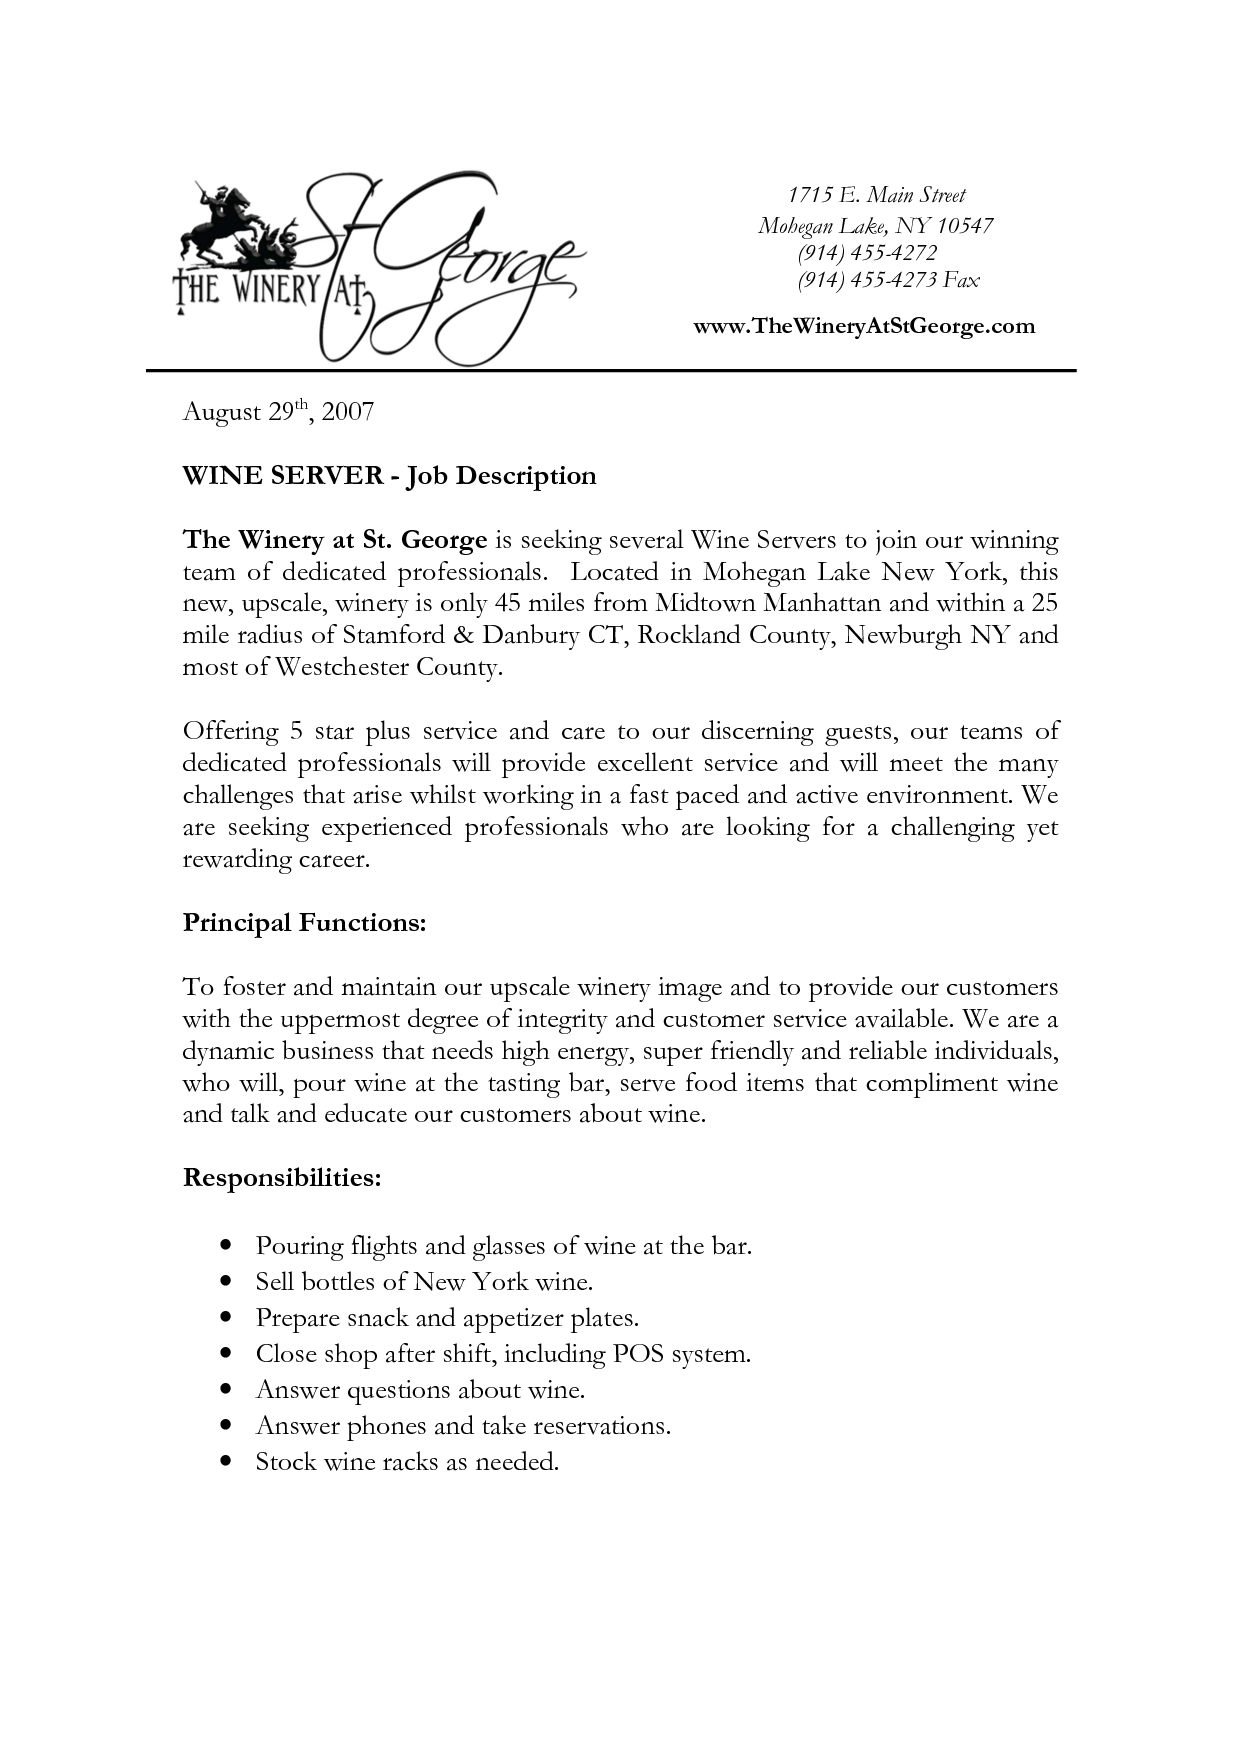 Description For Resume Grude Interpretomics Co